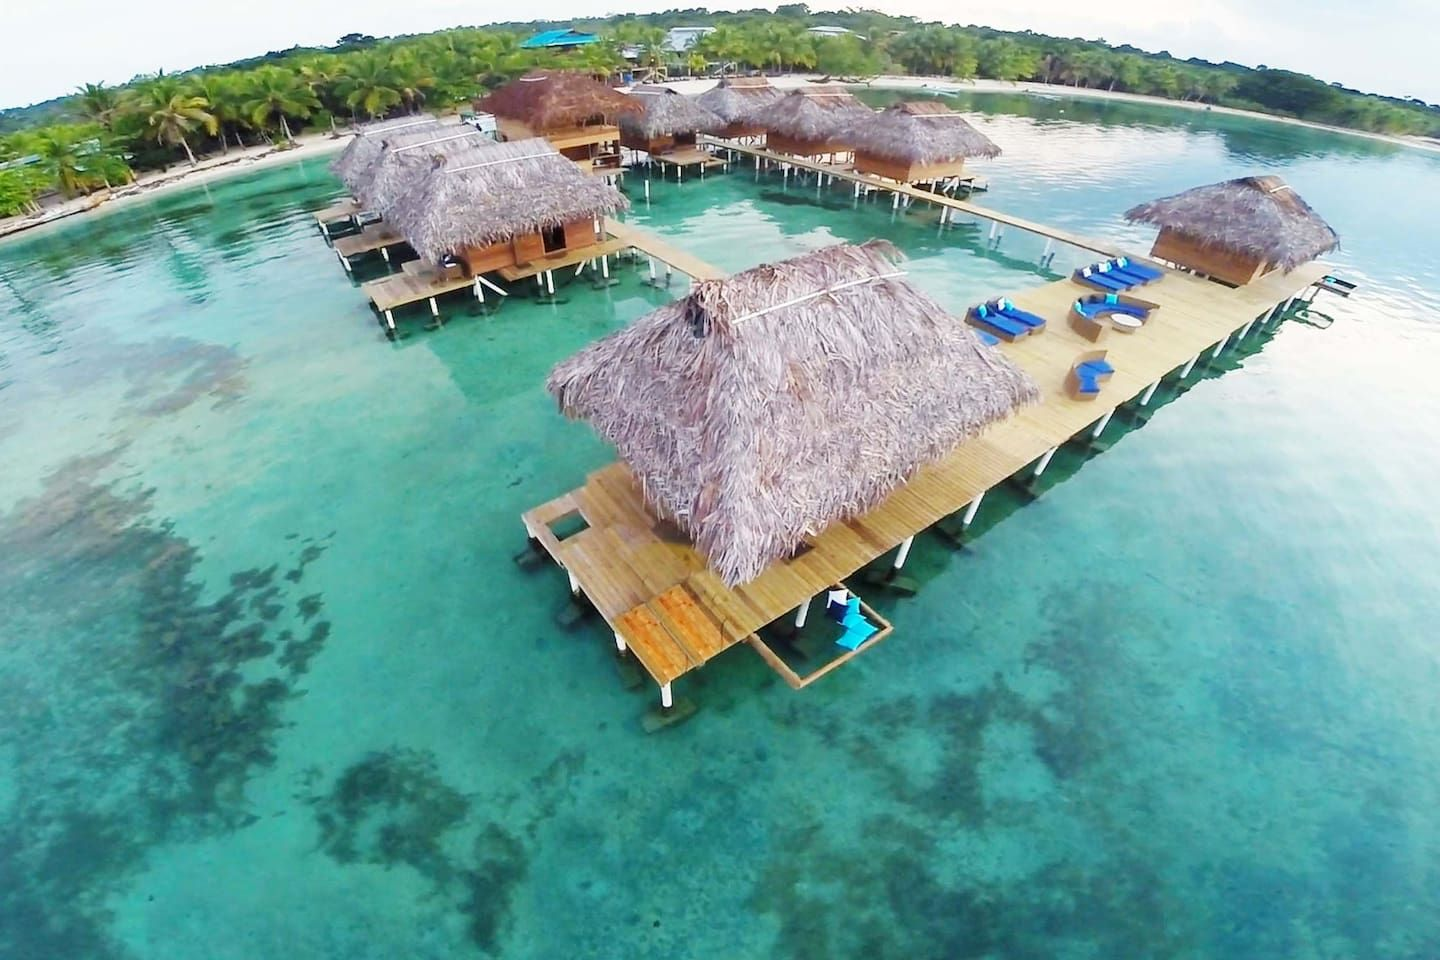 Villa in Isla Bastimentos, Panama. Our Cool and